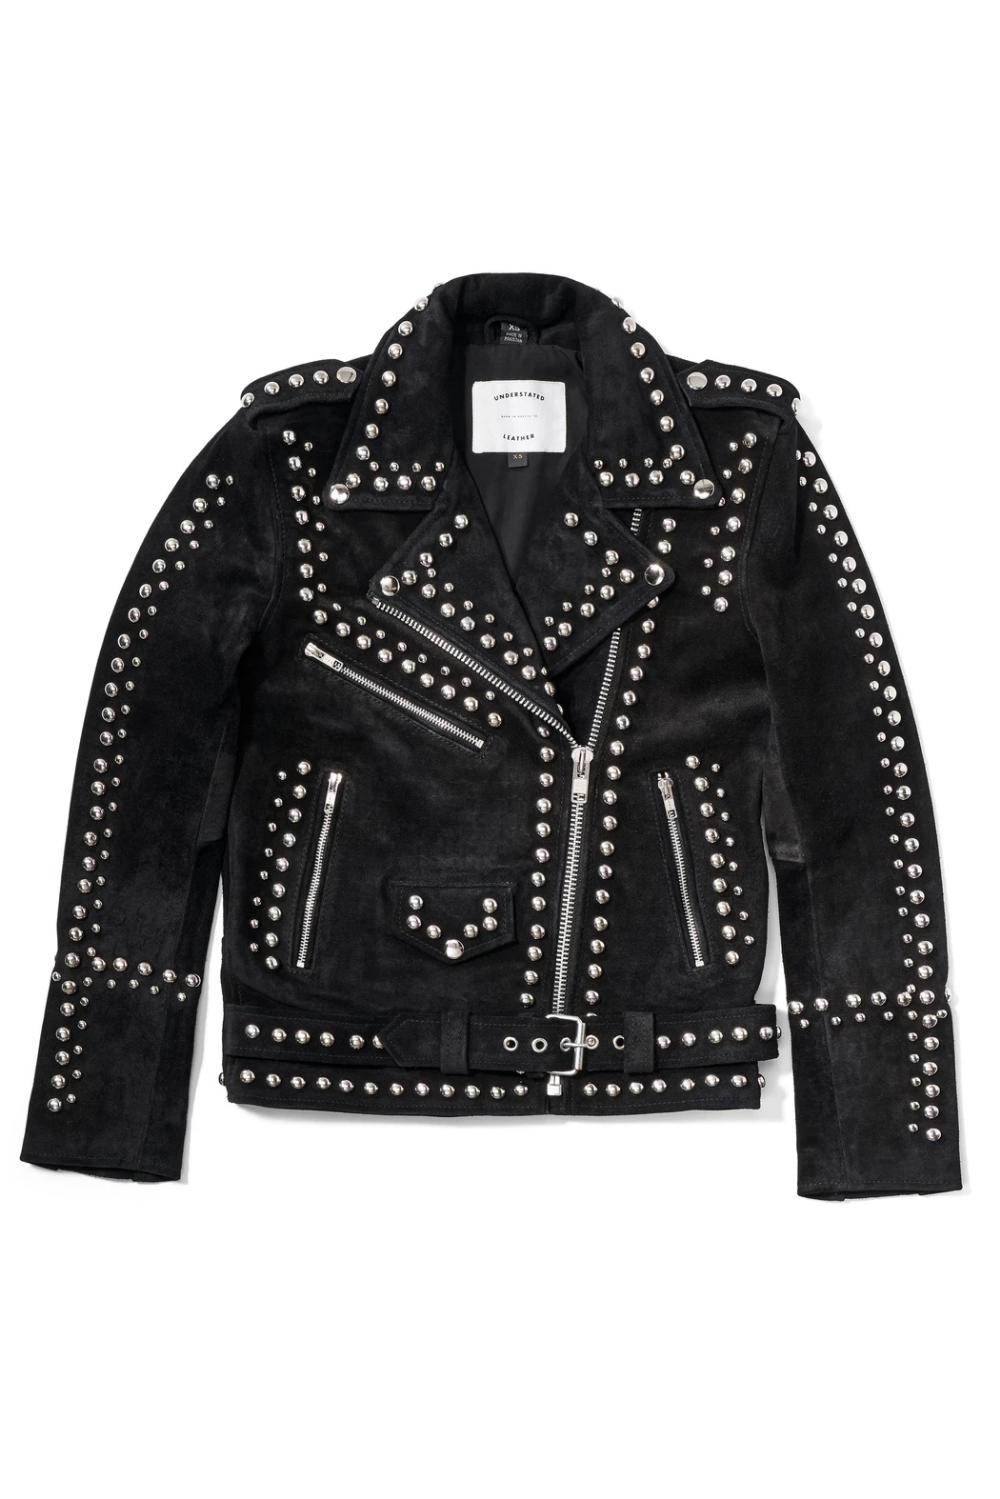 Studded Easy Rider Jacket — Understated Leather